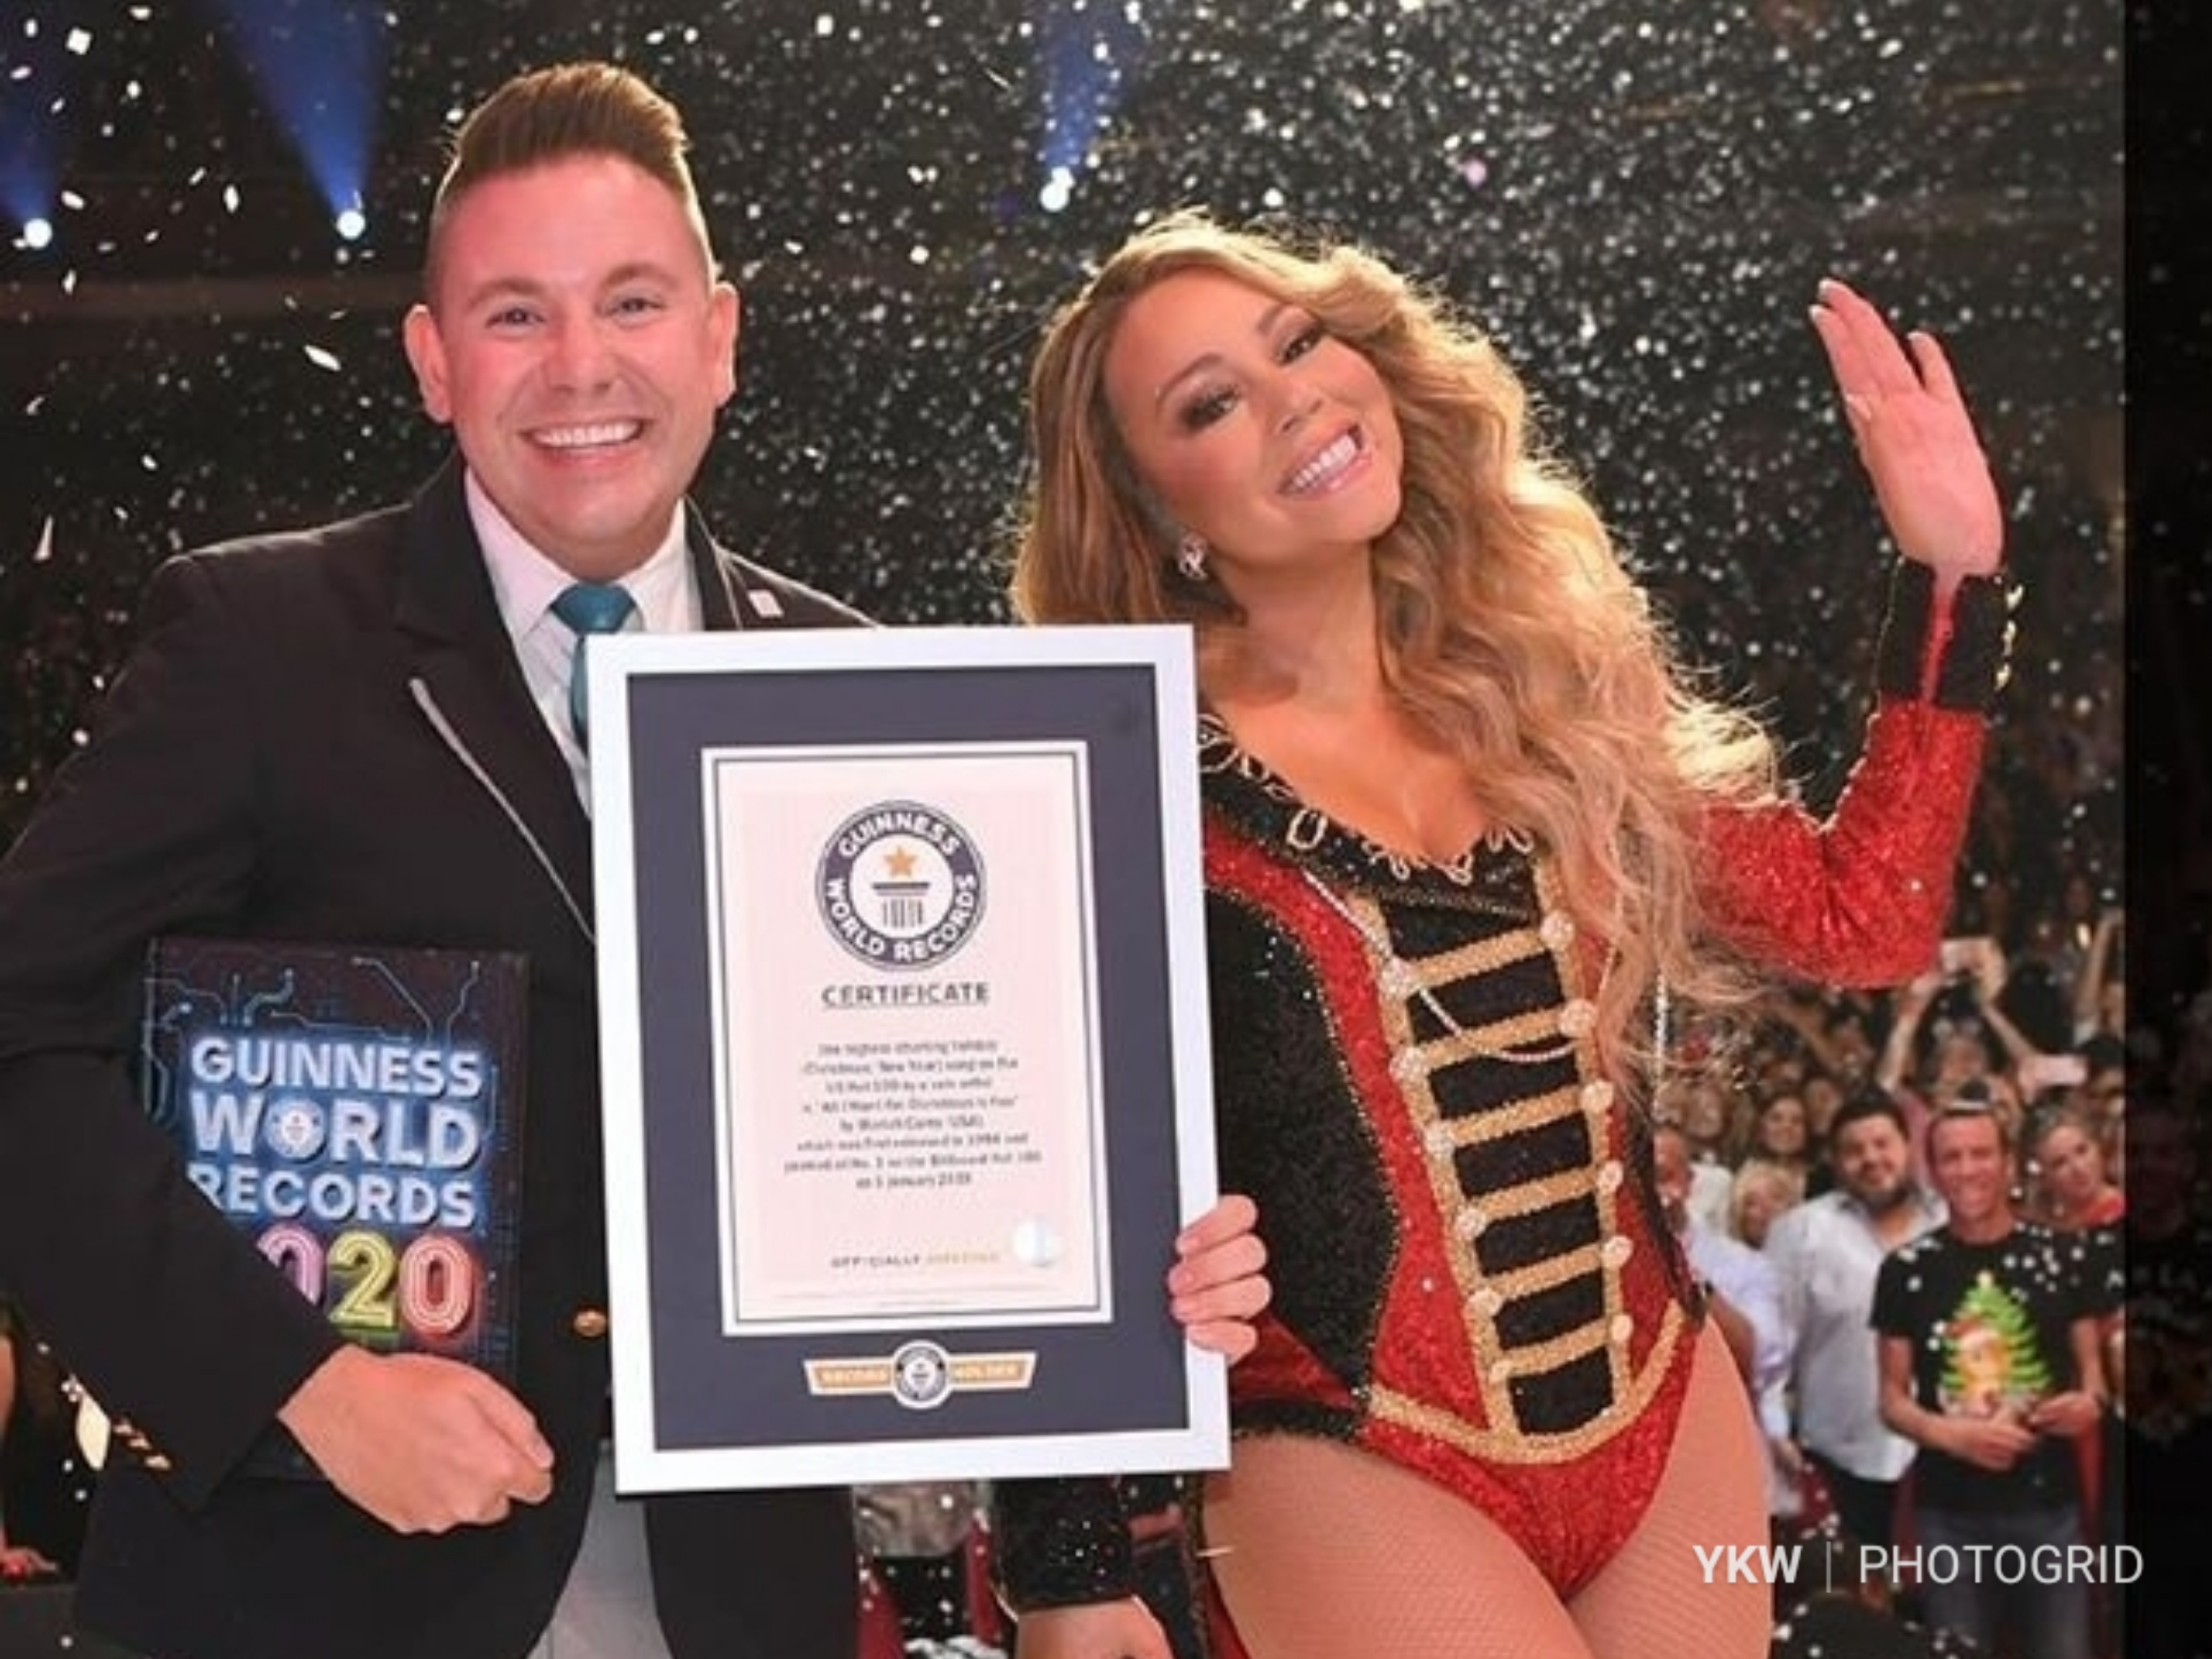 Mariah Carey Makes The 2020 Guinness World Records With Holiday